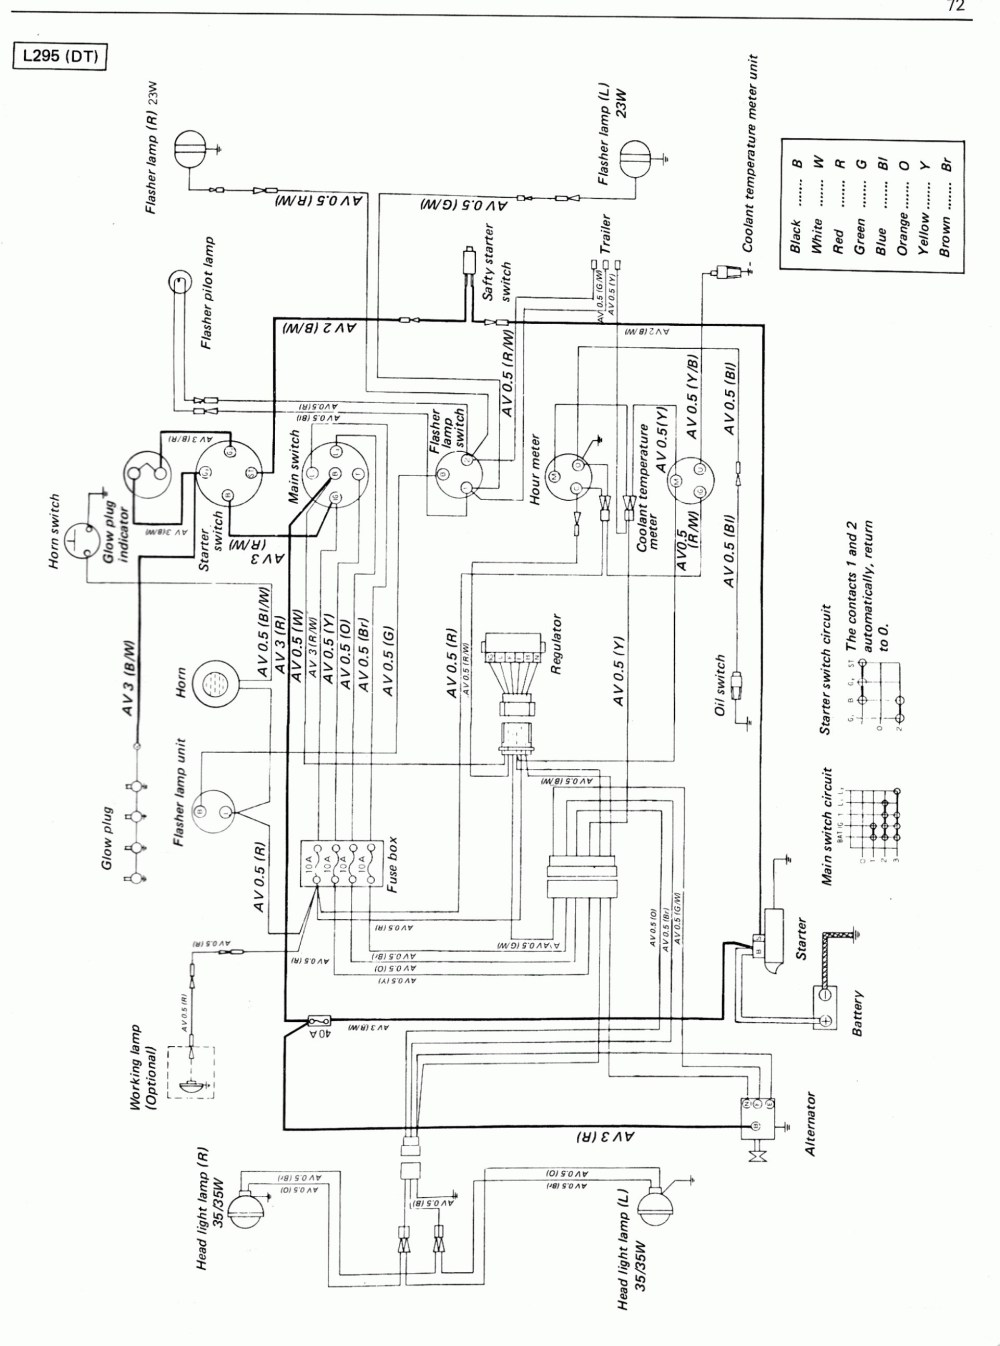 medium resolution of gf1800 kubota key switch wiring diagram schematic diagram downloadkubota wiring schematic wiring diagram z4gl6500s kubota wiring